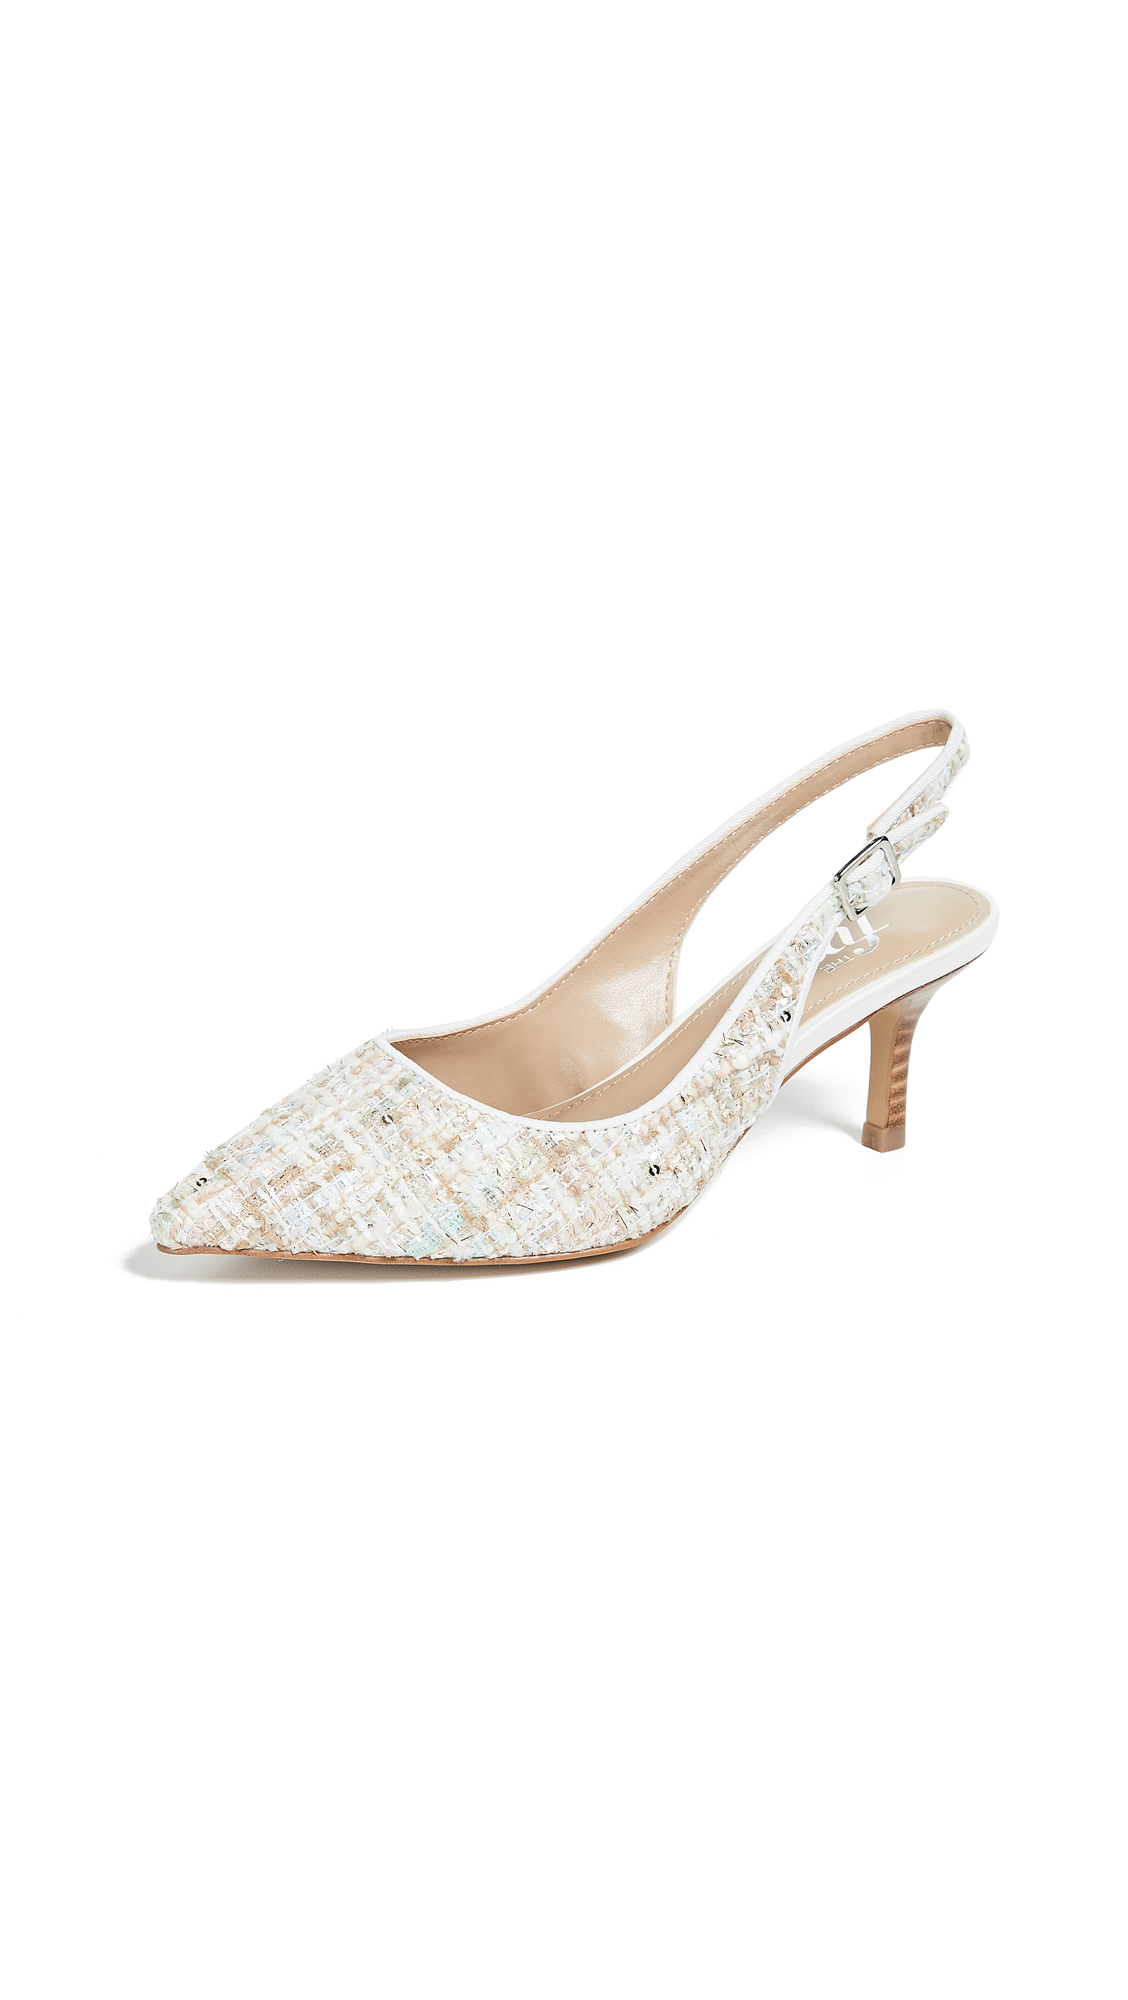 The Fix Felicia Slingback Pumps - Bright White